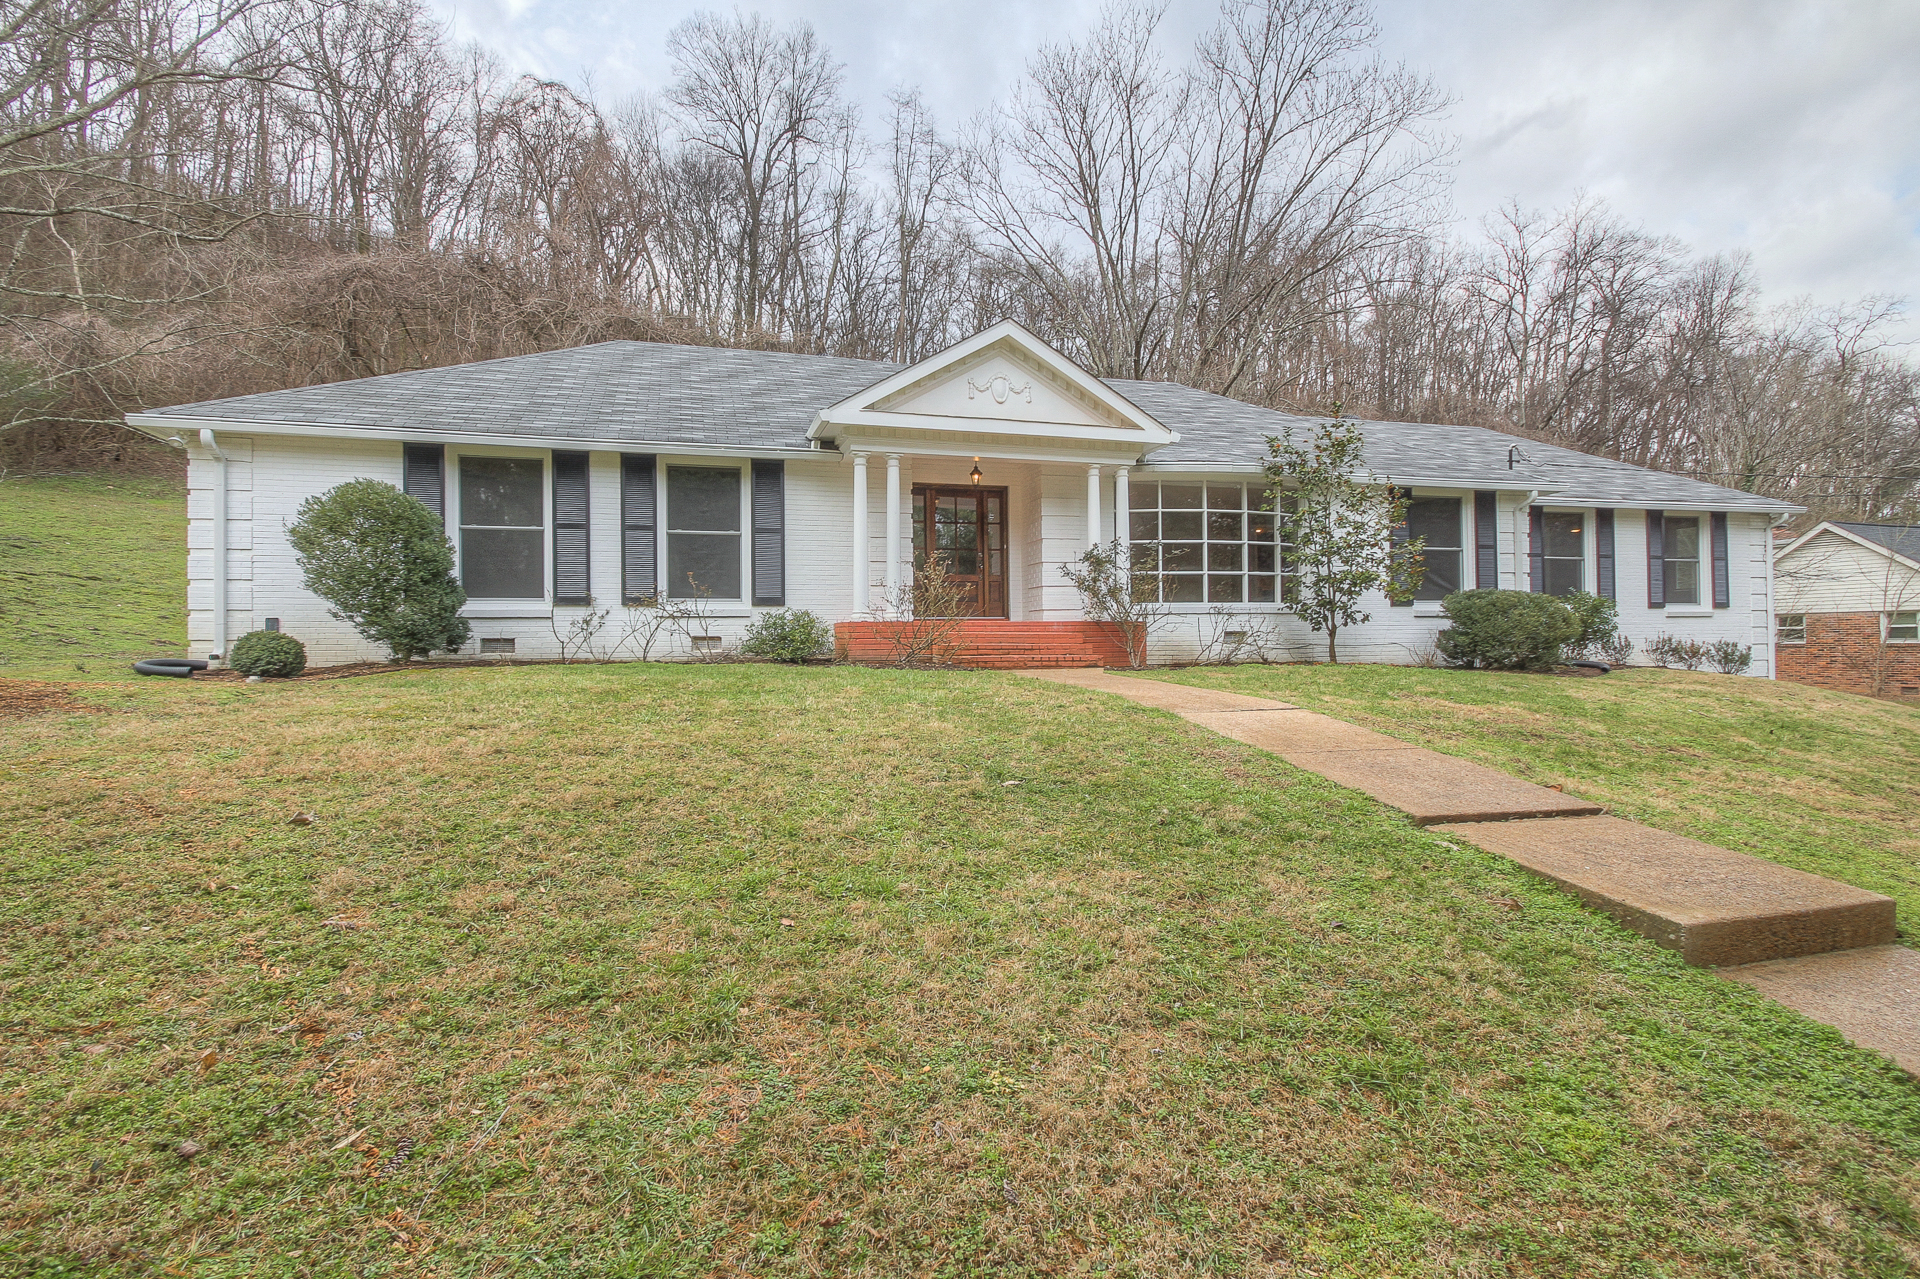 Single Family Home for Sale at Renovated and Spacious West Meade Home 6690 Clearbrook Dr West Meade, Nashville, Tennessee, 37205 United States